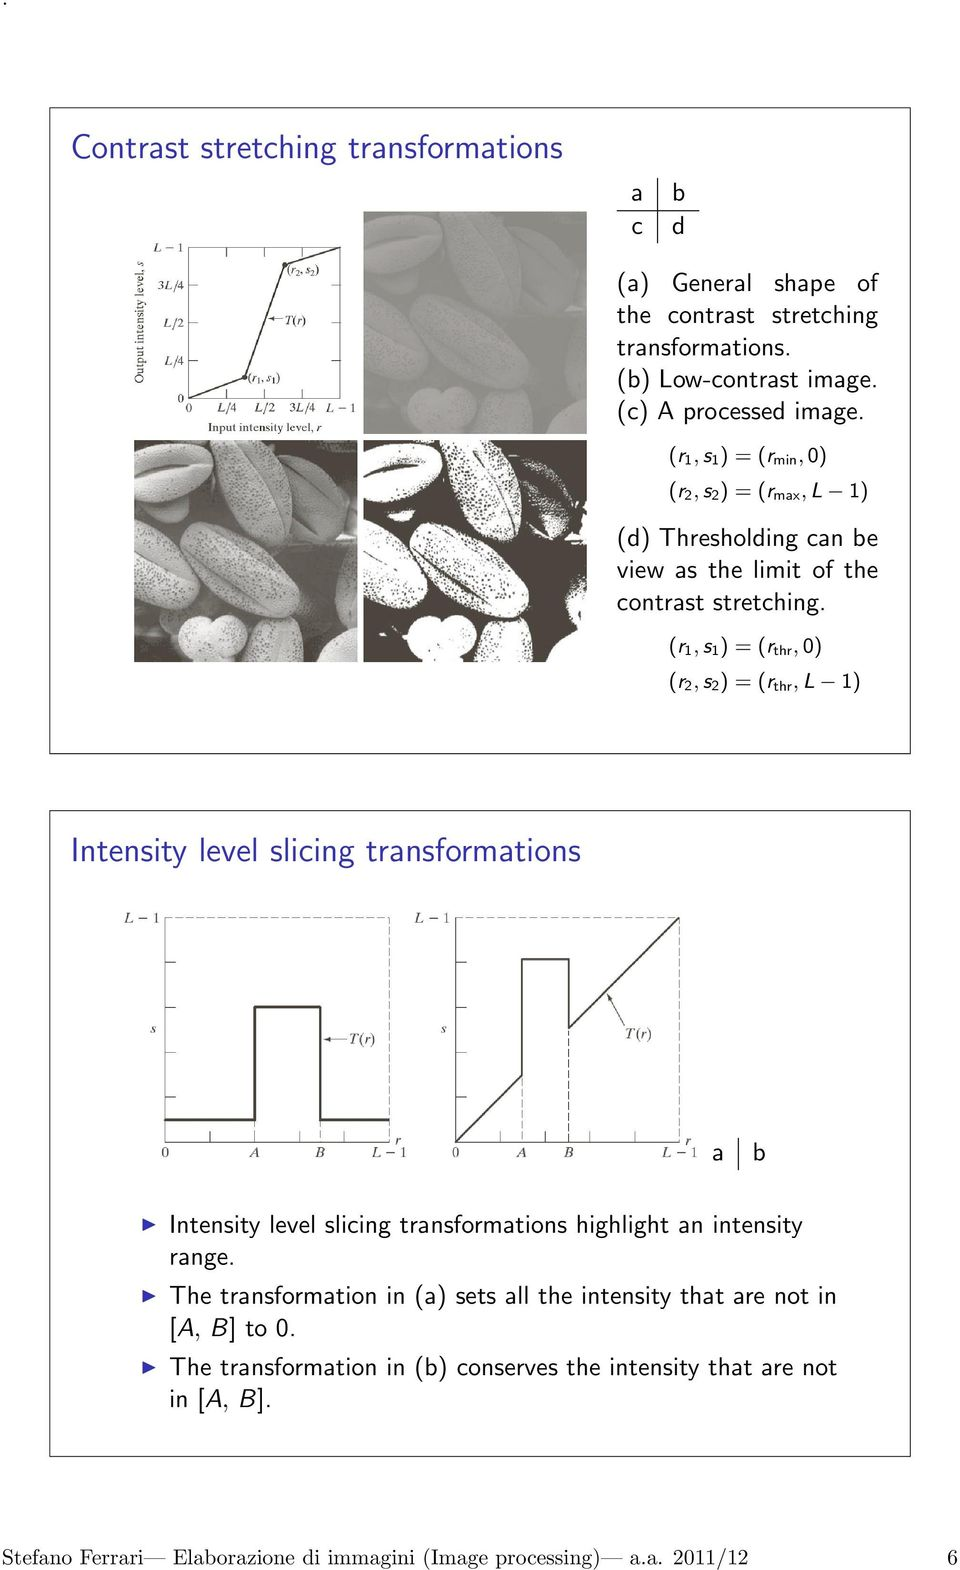 (r 1, s 1 ) = (r thr, 0) (r 2, s 2 ) = (r thr, L 1) Intensity level slicing transformations a b Intensity level slicing transformations highlight an intensity range.